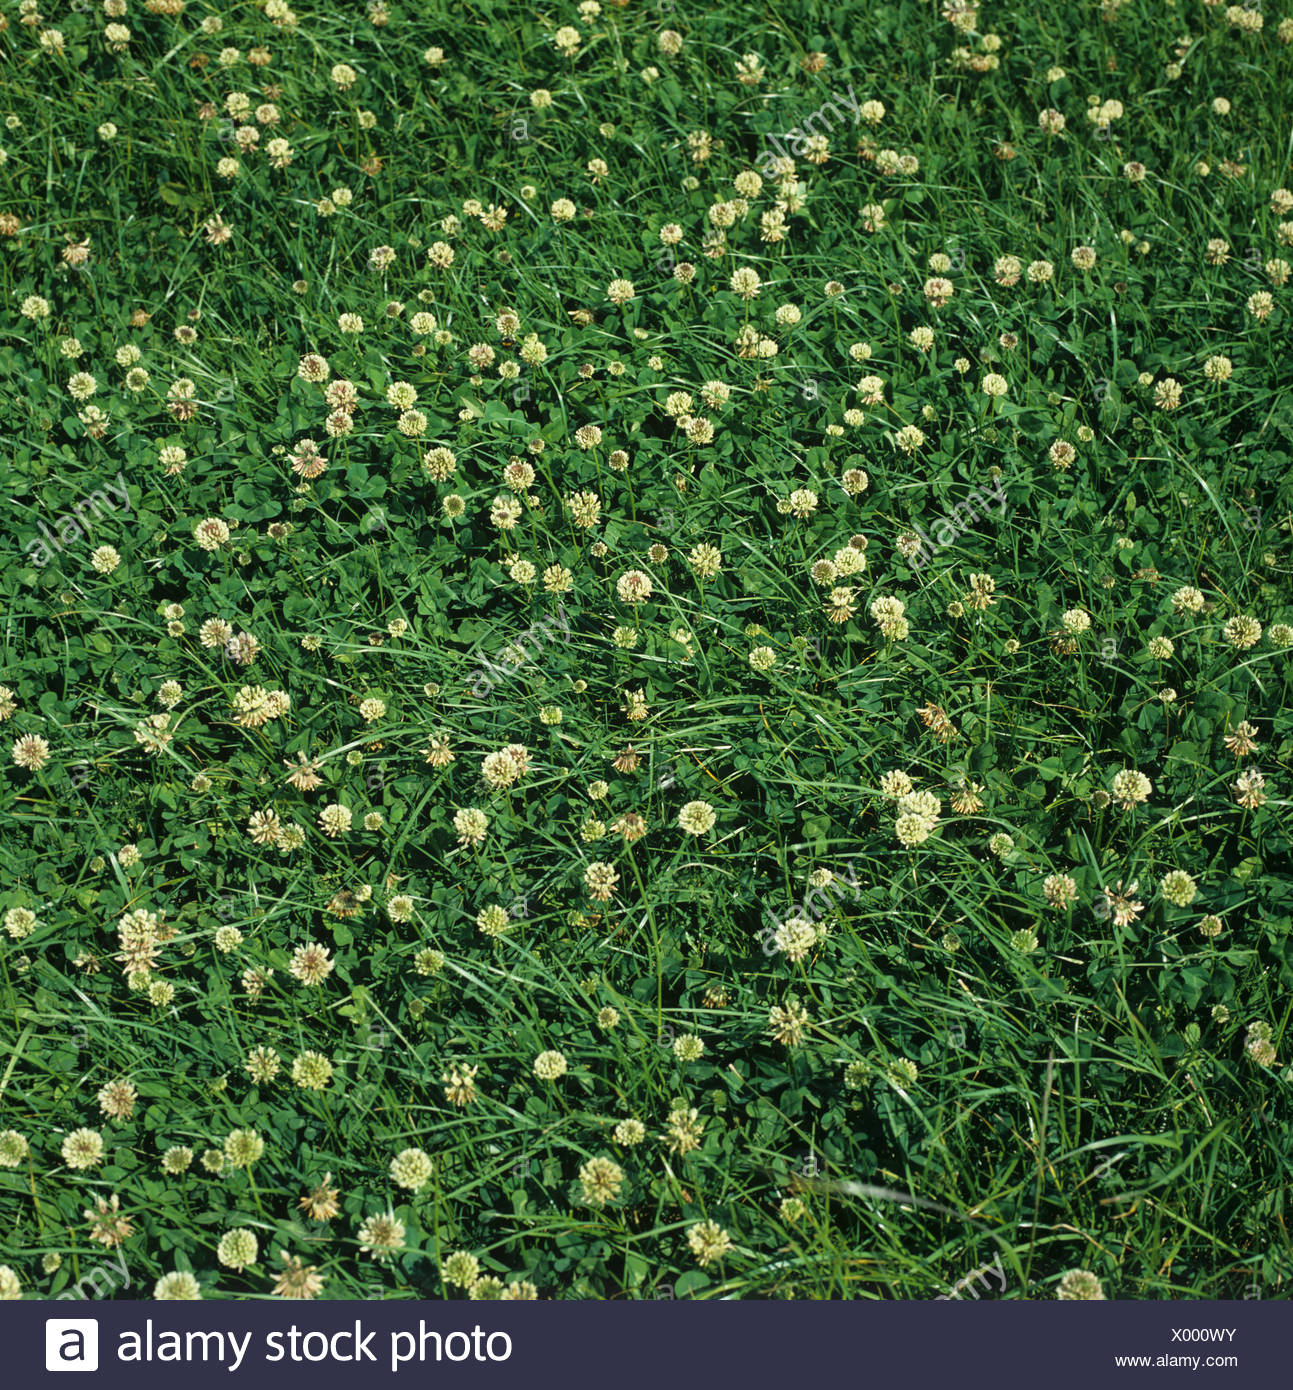 White Clover Flowering In A Grass Ley Clover Mixture Stock Photo